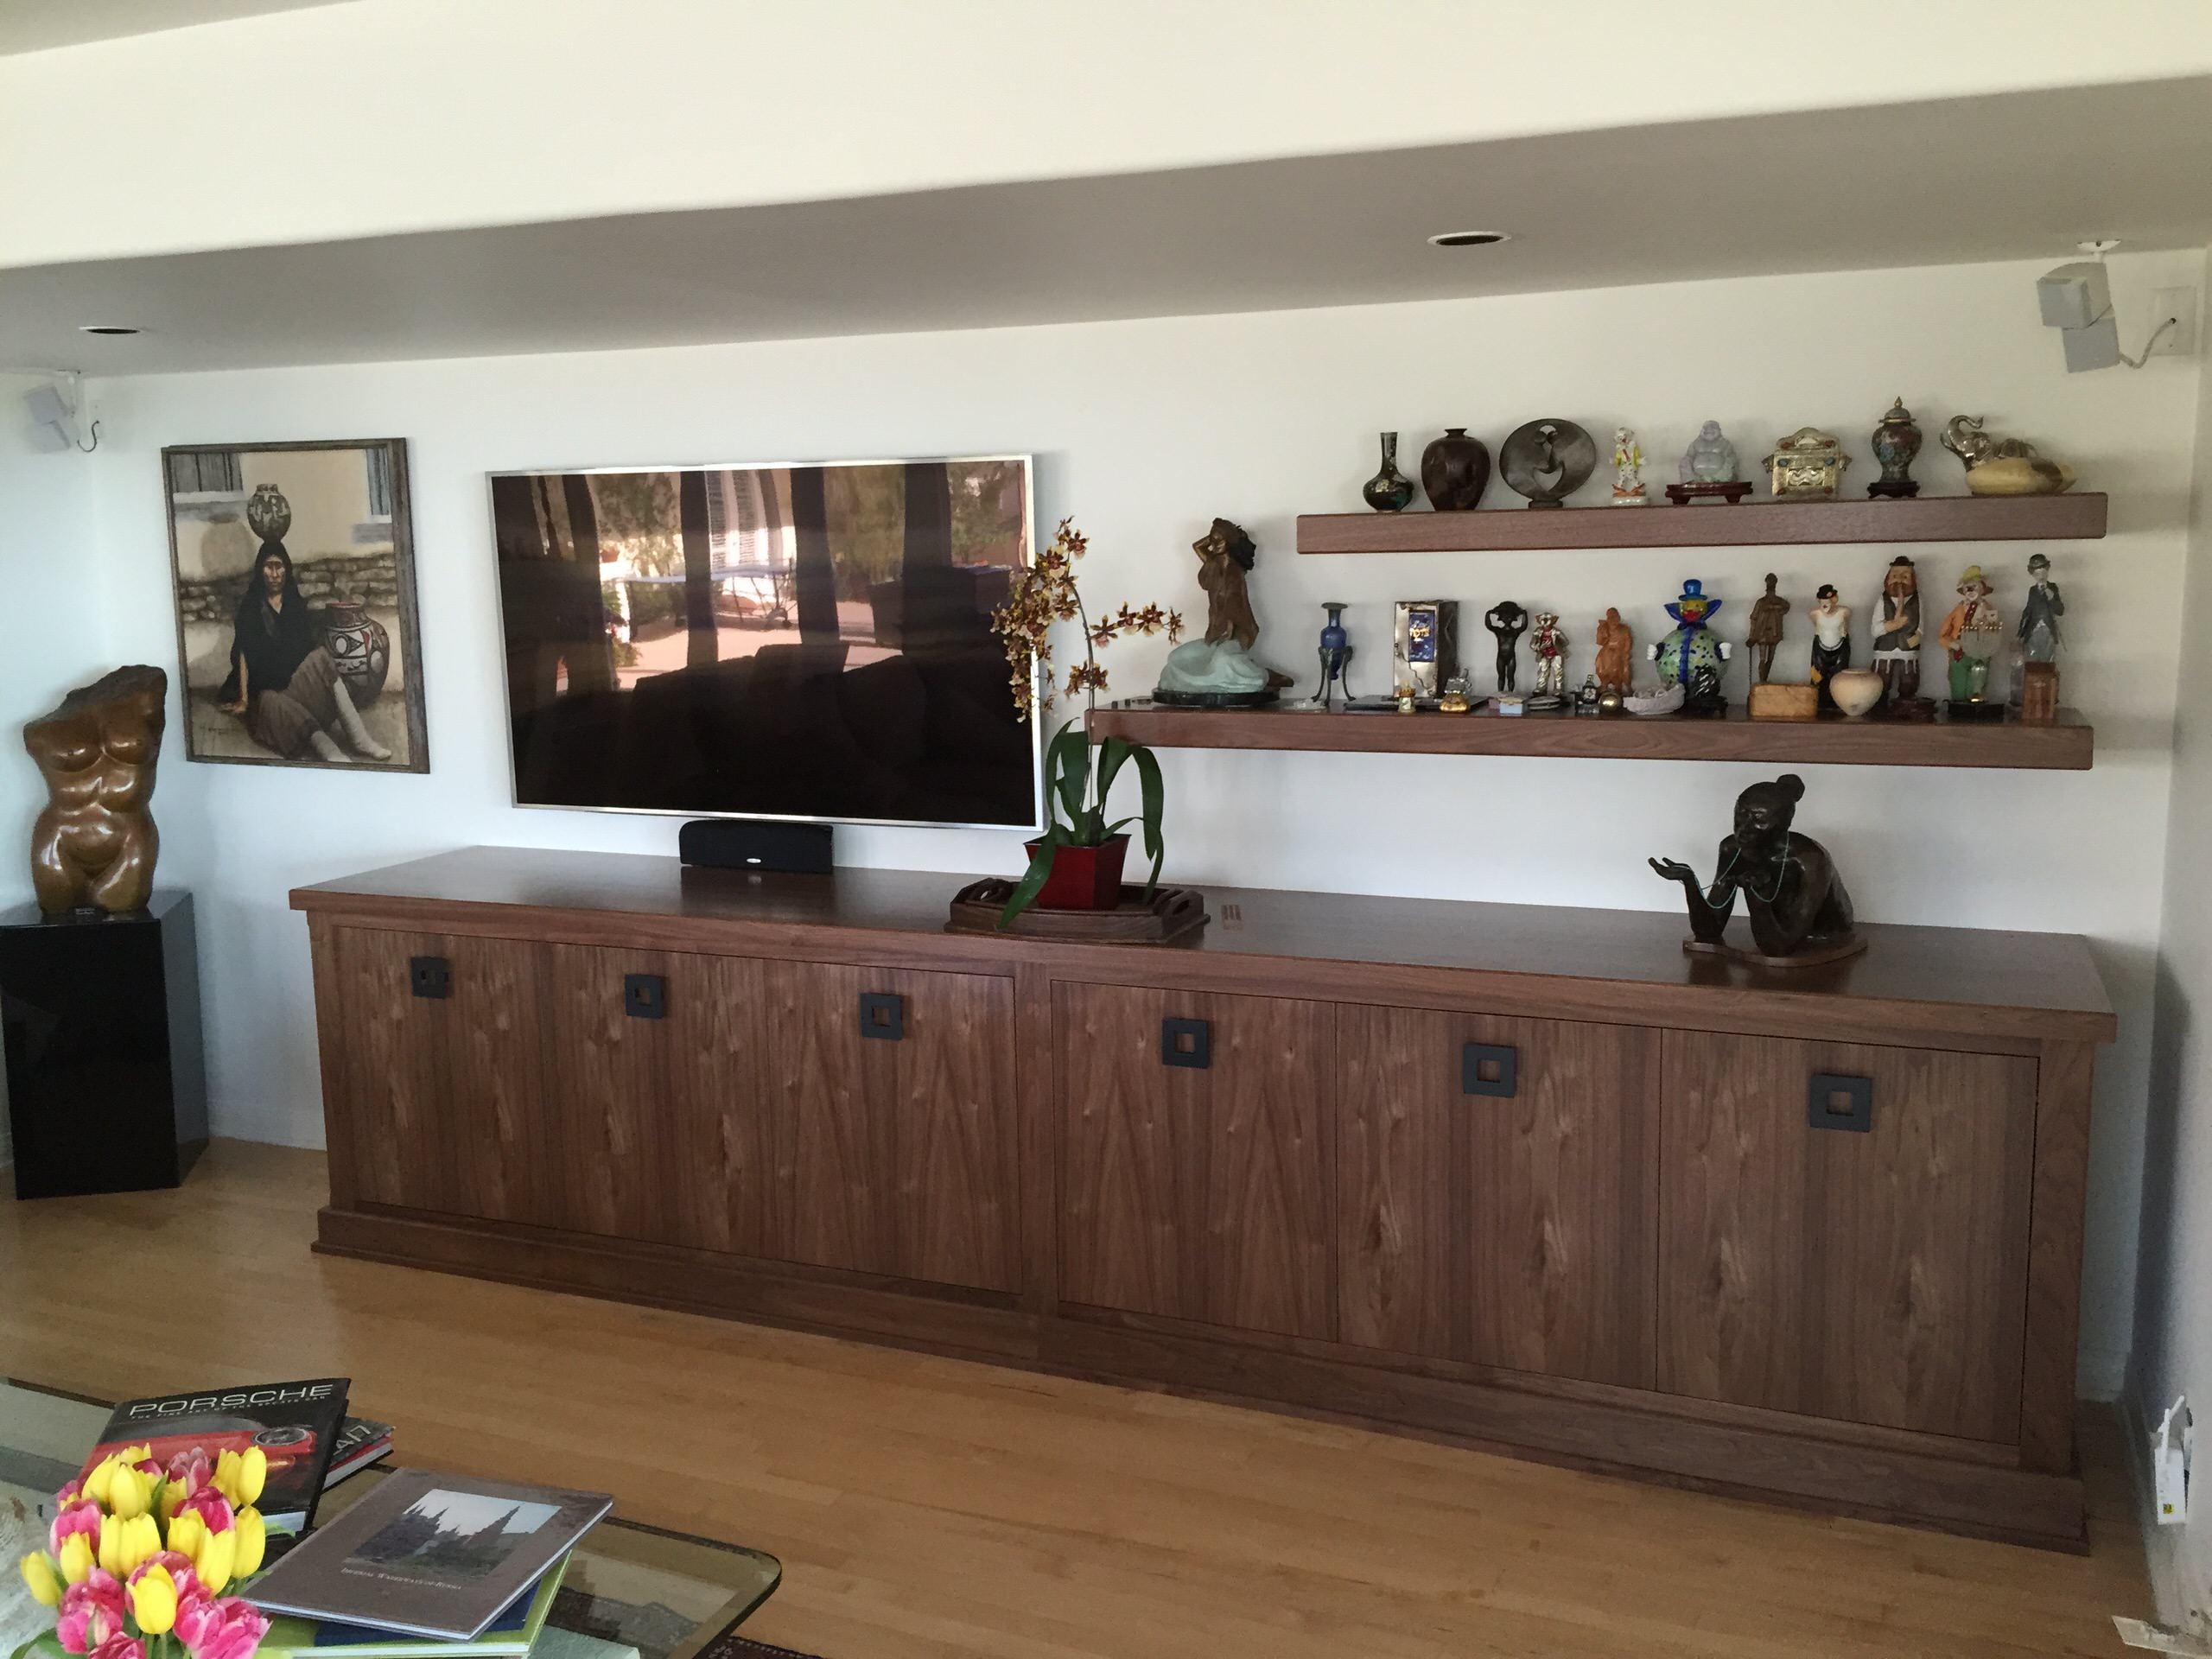 Pacific Palisades Storage Cabinetry & Shelves